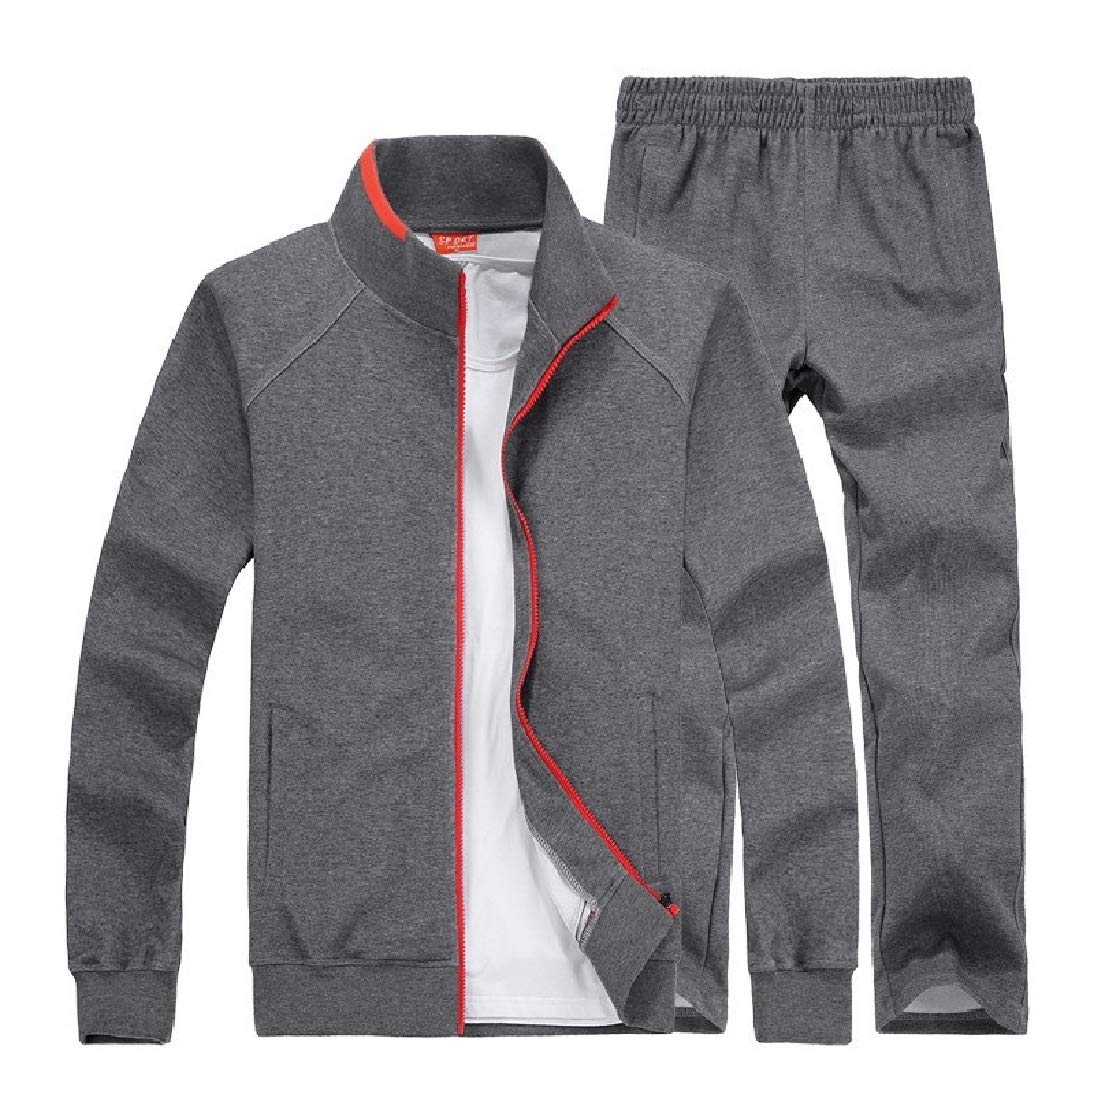 Comaba Men Stand-up Collar with Zip Oversize Casual 2-Piece Set Sweatsuits Tracksuits